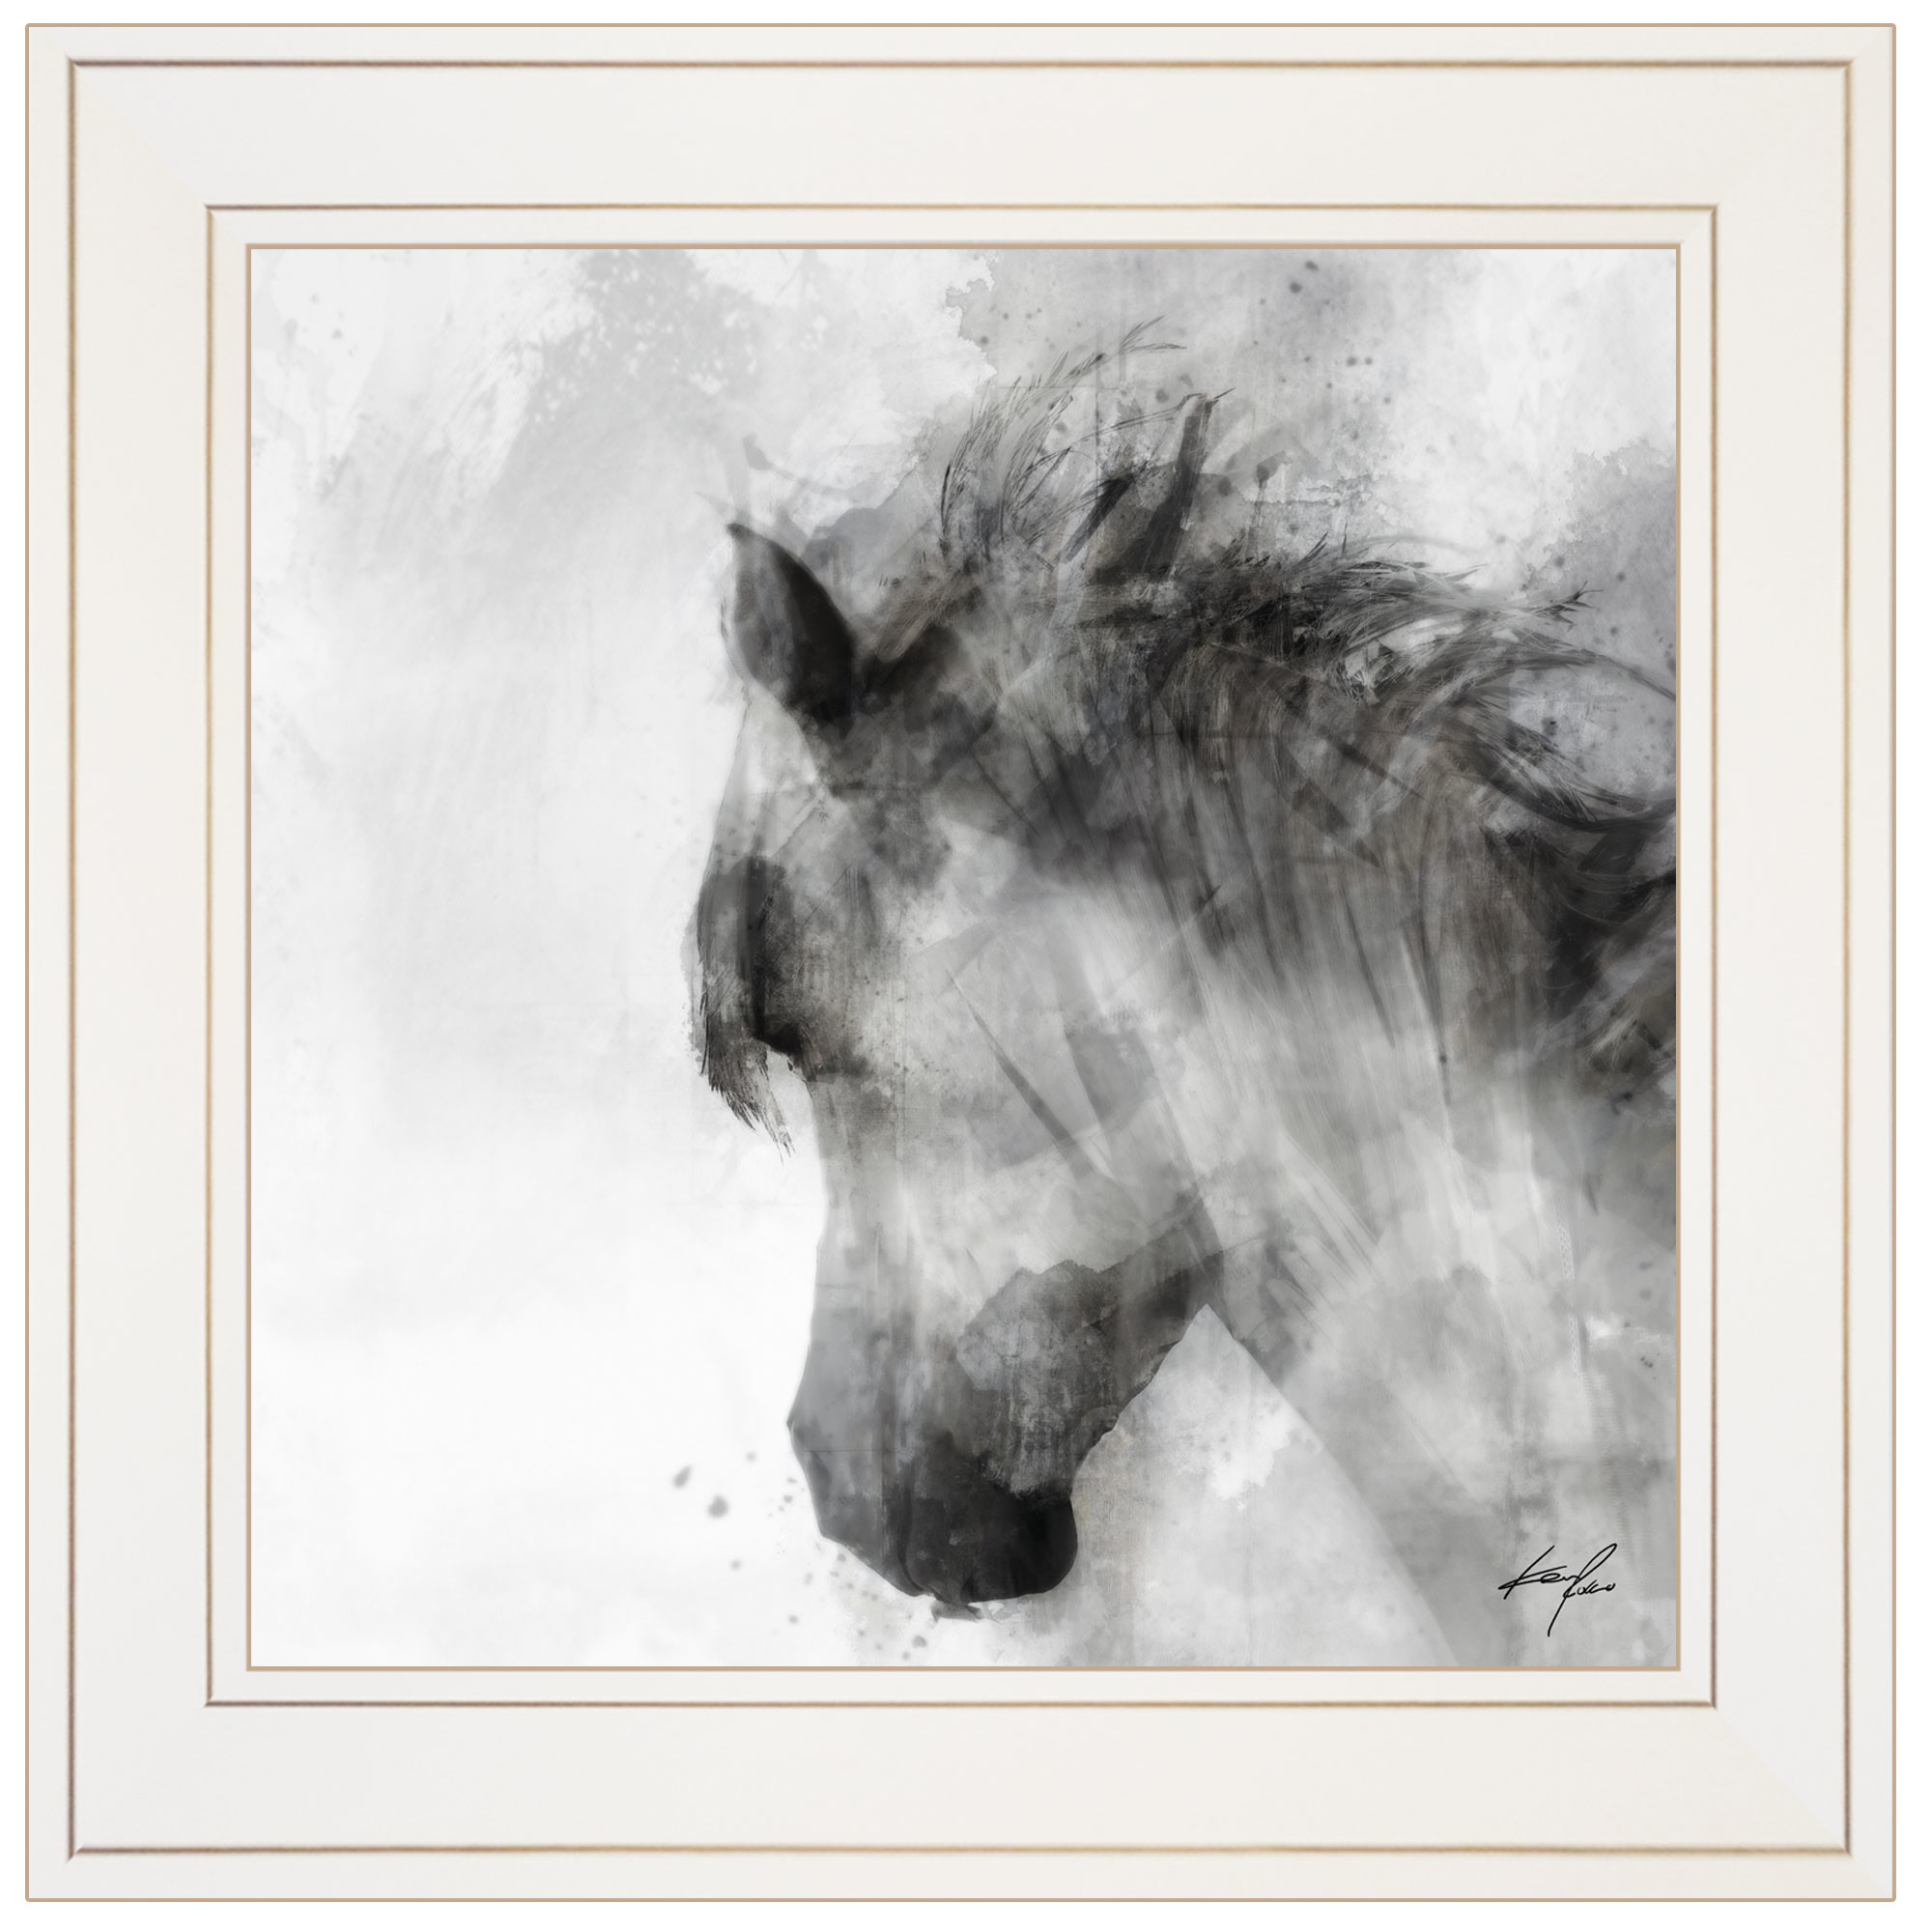 ""\""""Journey to the West Ii"""" by Ken Roko, Ready to Hang Framed print, White Frame""2000|2000|?|en|2|6e9929bc3eab22cae8241a2a953f71ee|False|UNLIKELY|0.2939702272415161